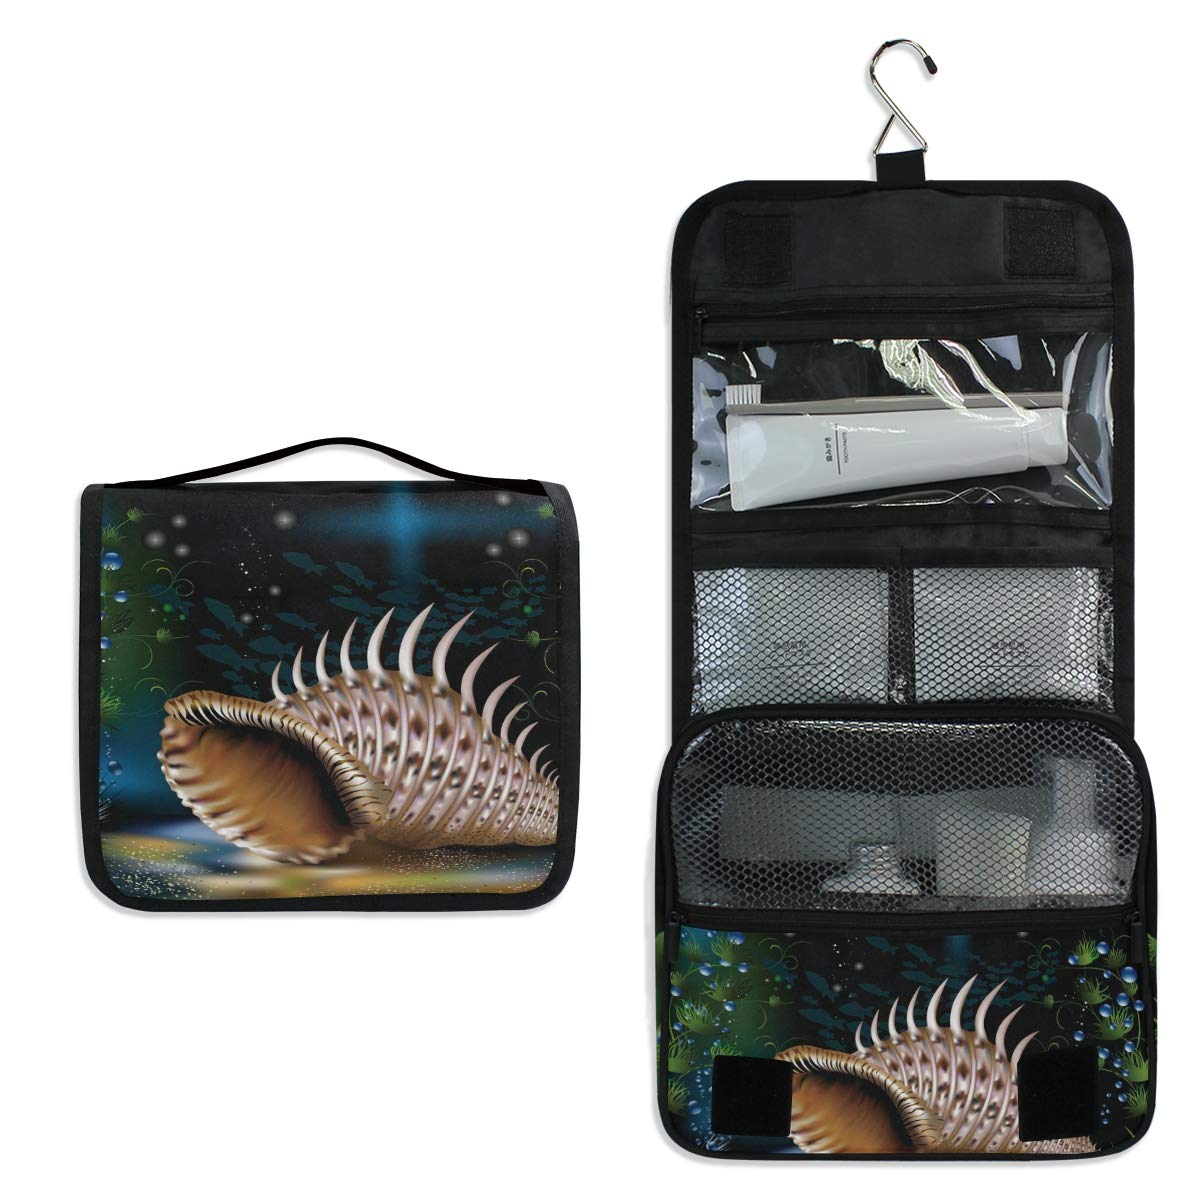 Sea Creature Toiletry Bag Multifunction Cosmetic Bag Portable Makeup Pouch Travel Hanging Organizer Bag for Women Girls